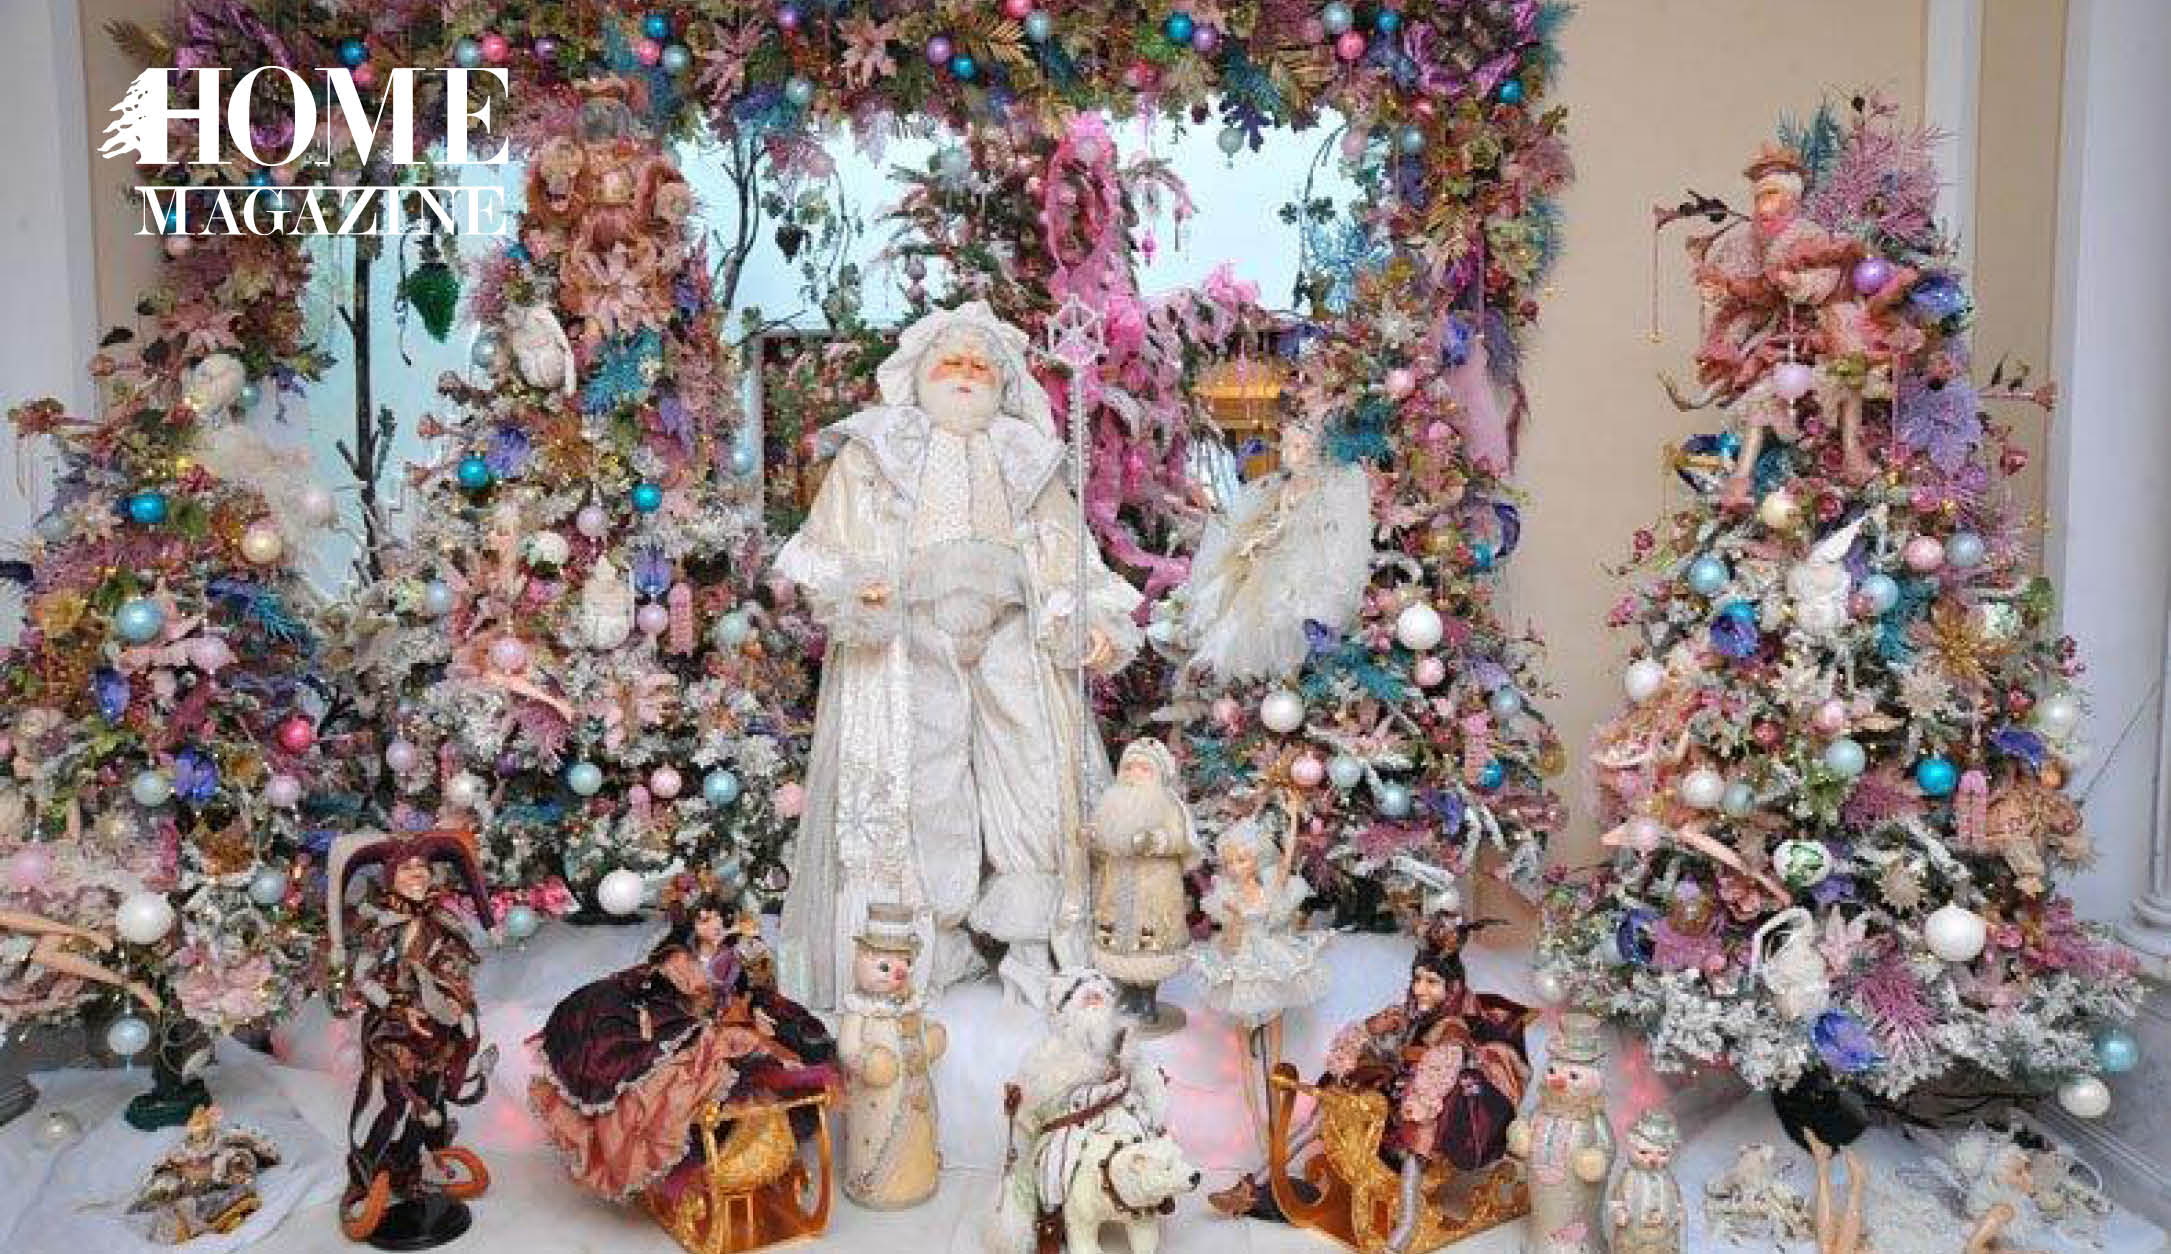 Christmas trees and Statues